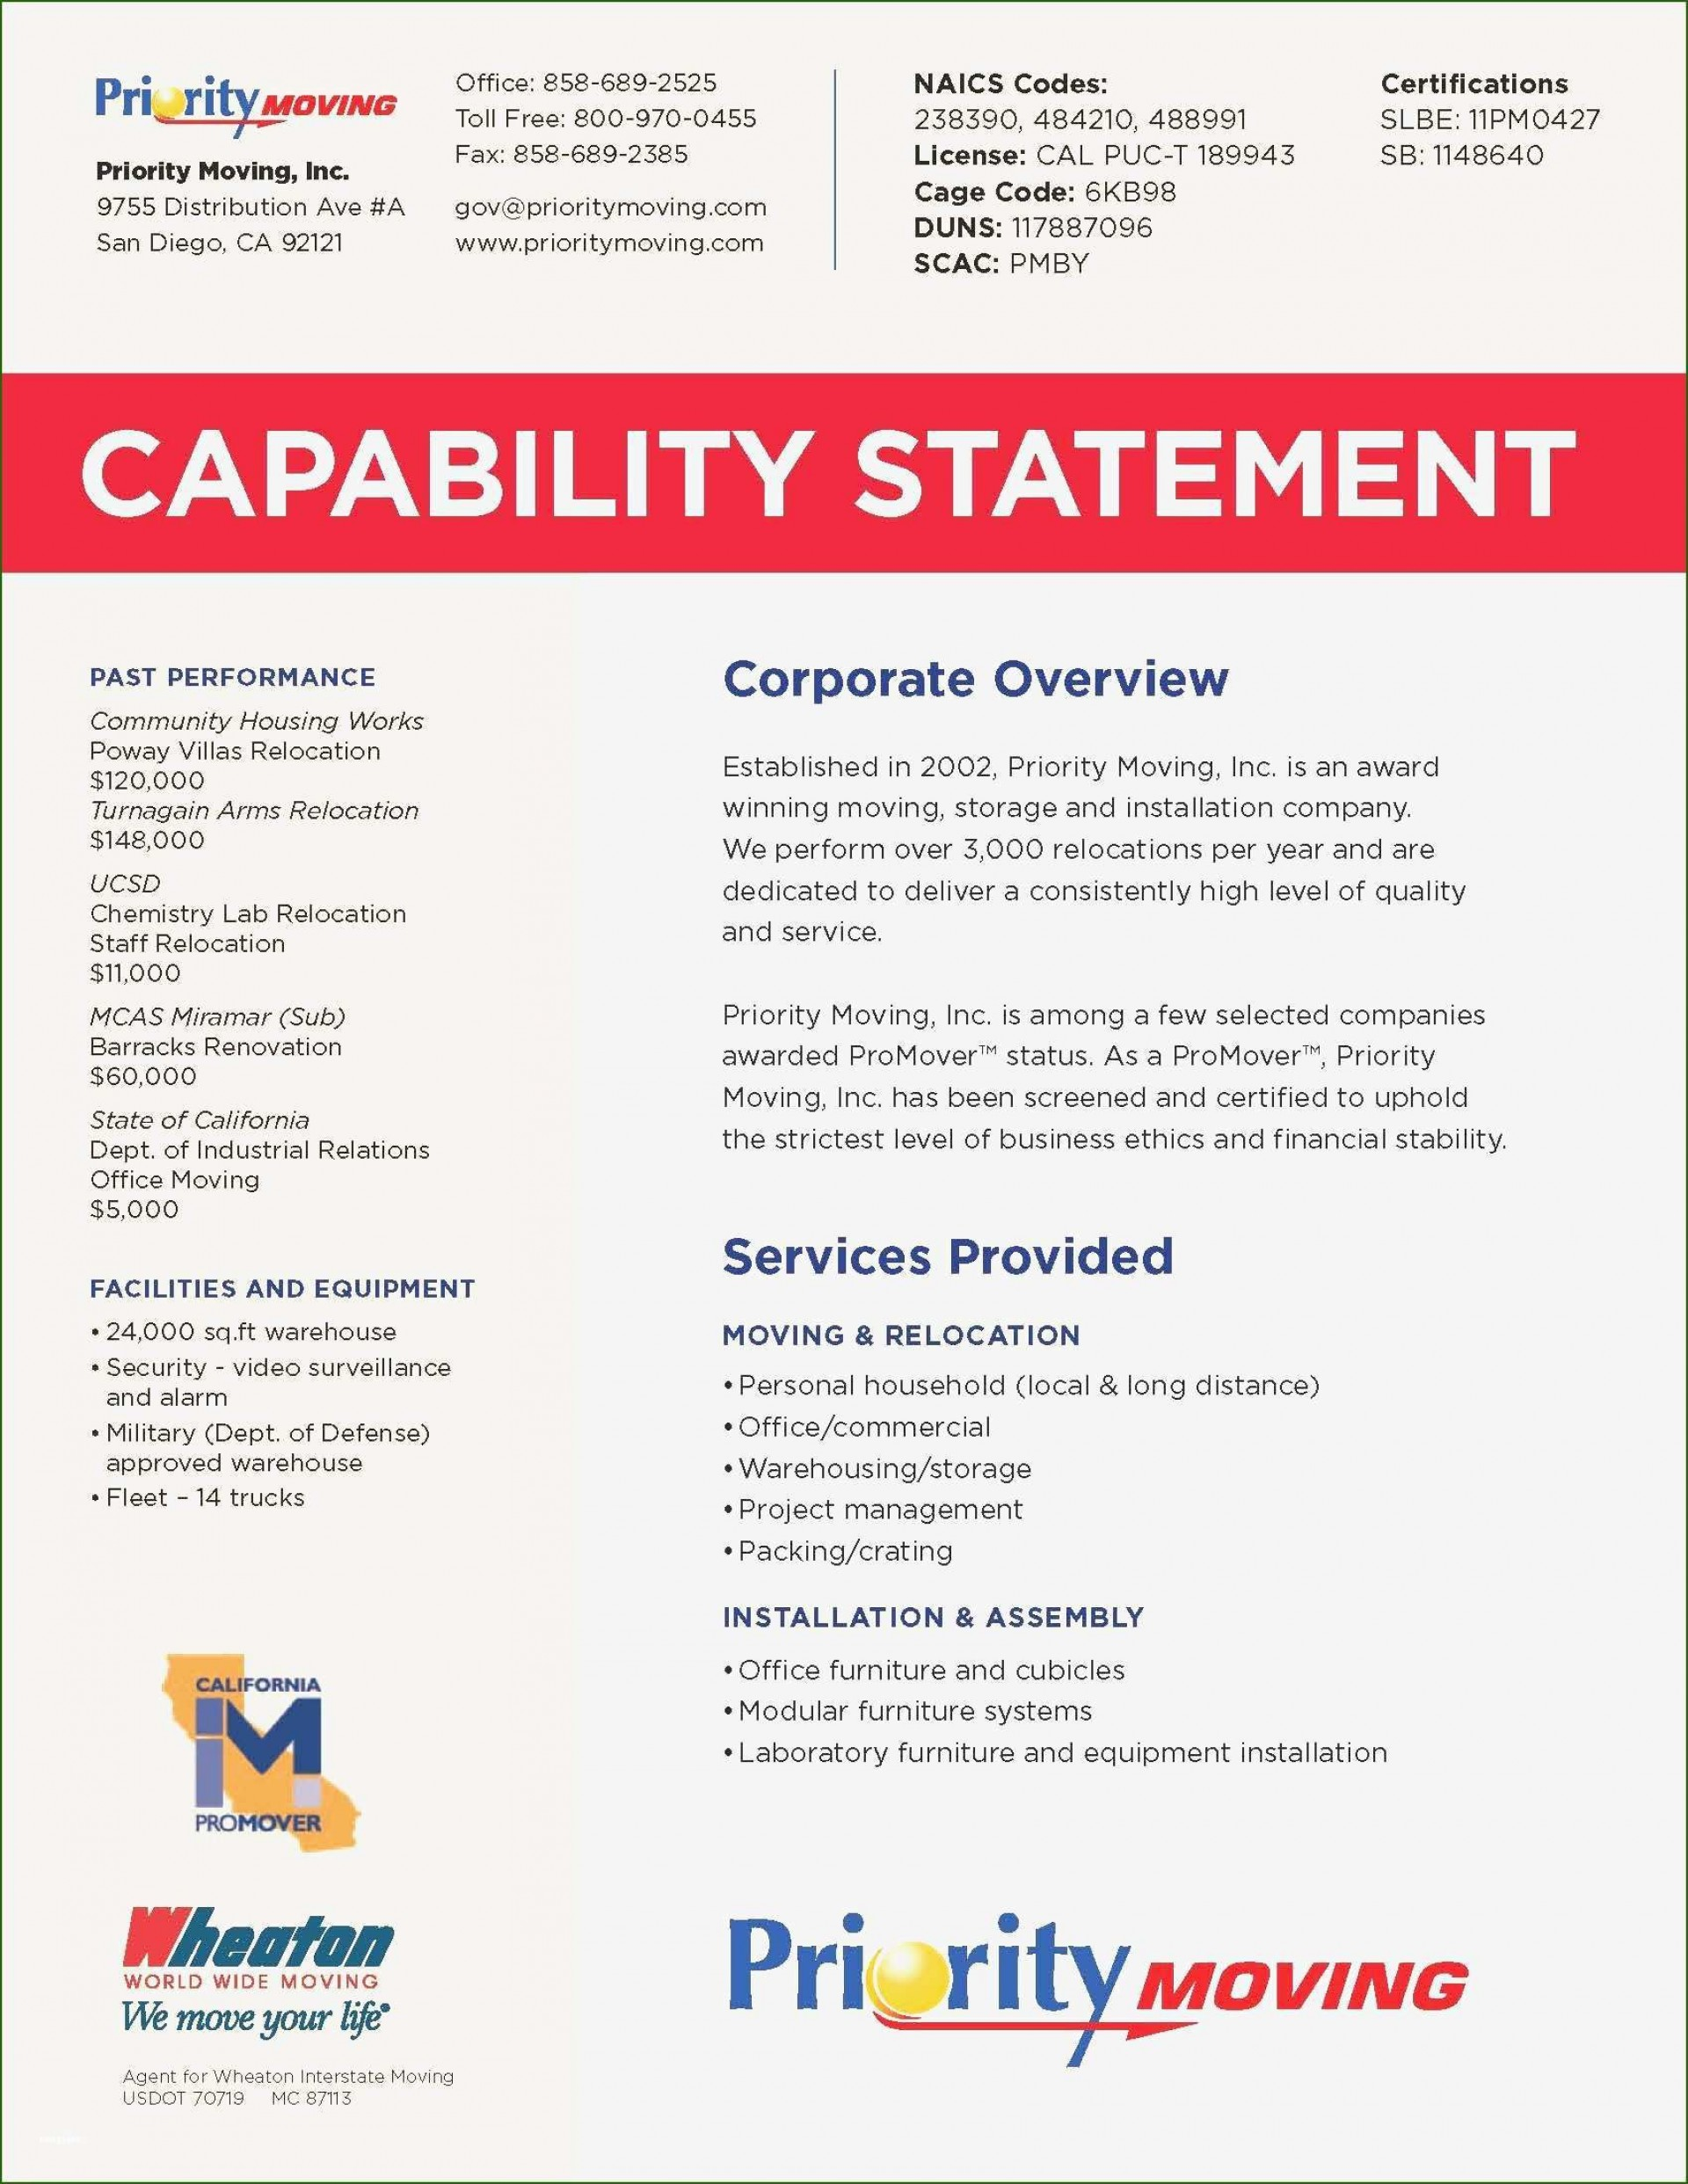 001 Sensational Capability Statement Template Word Doc Idea  Document Free1920